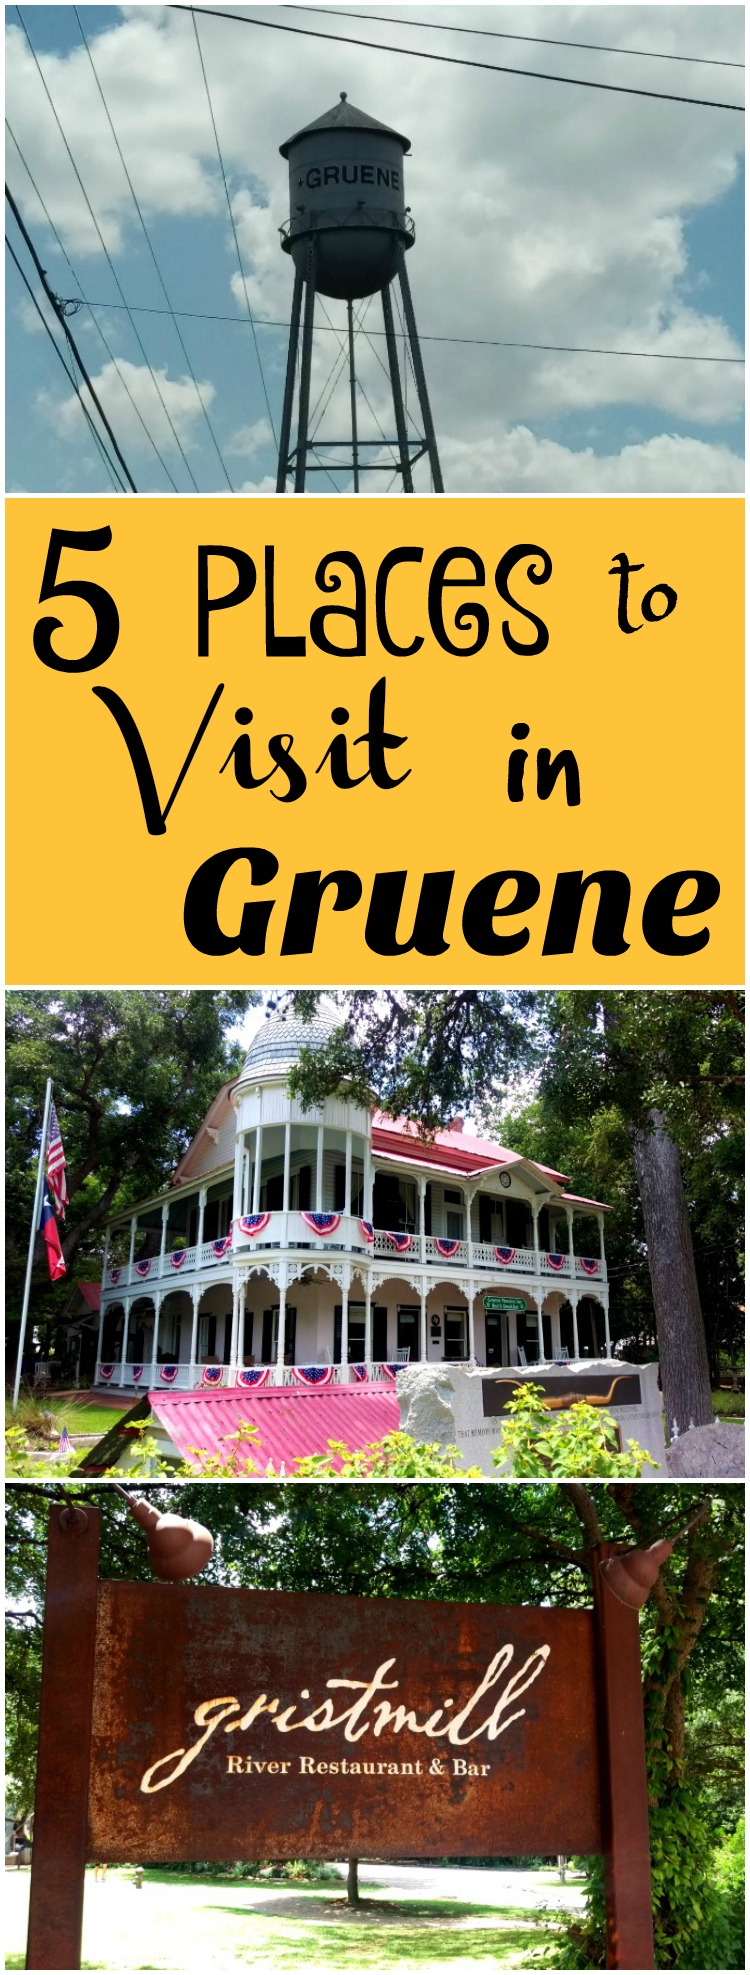 Gruene is a beautiful area located next to New Braunfels. Here are 5 Places to Visit in Gruene.